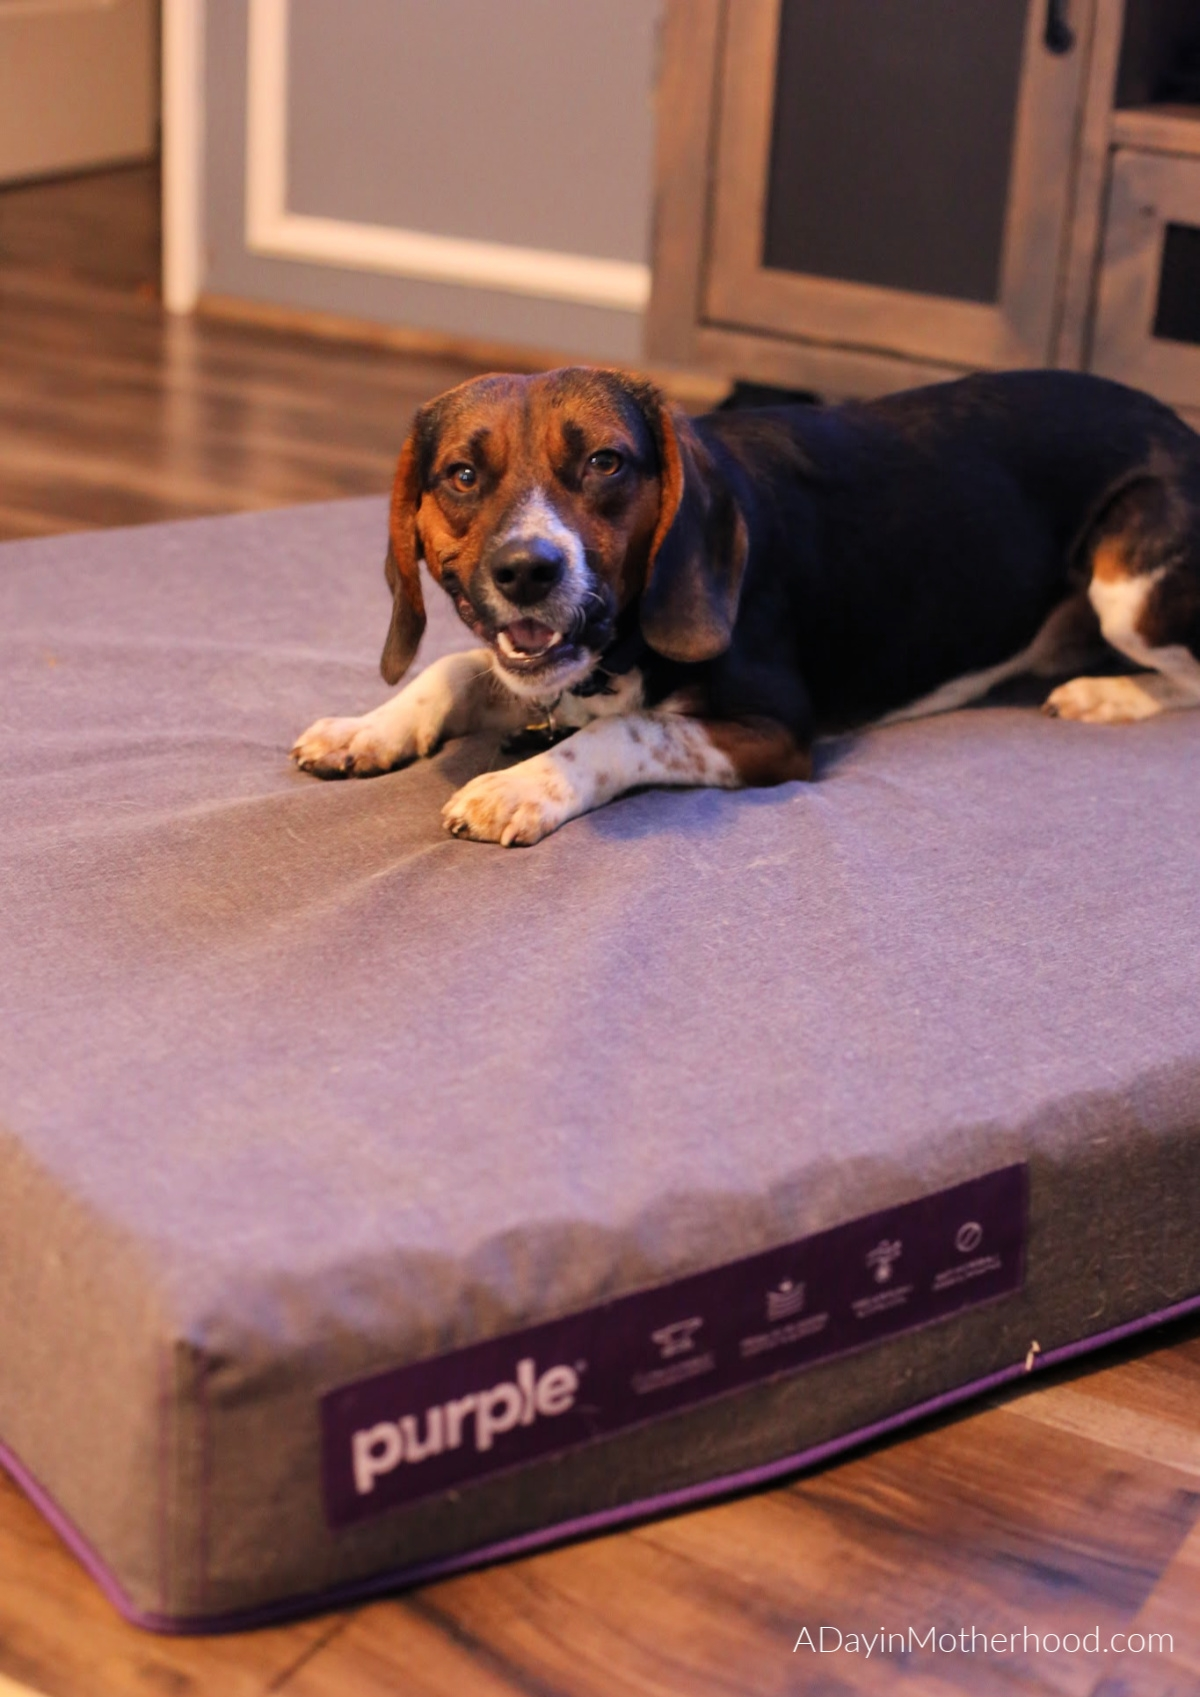 Spoil Your Dogs with a Purple Dog Bed for Patton